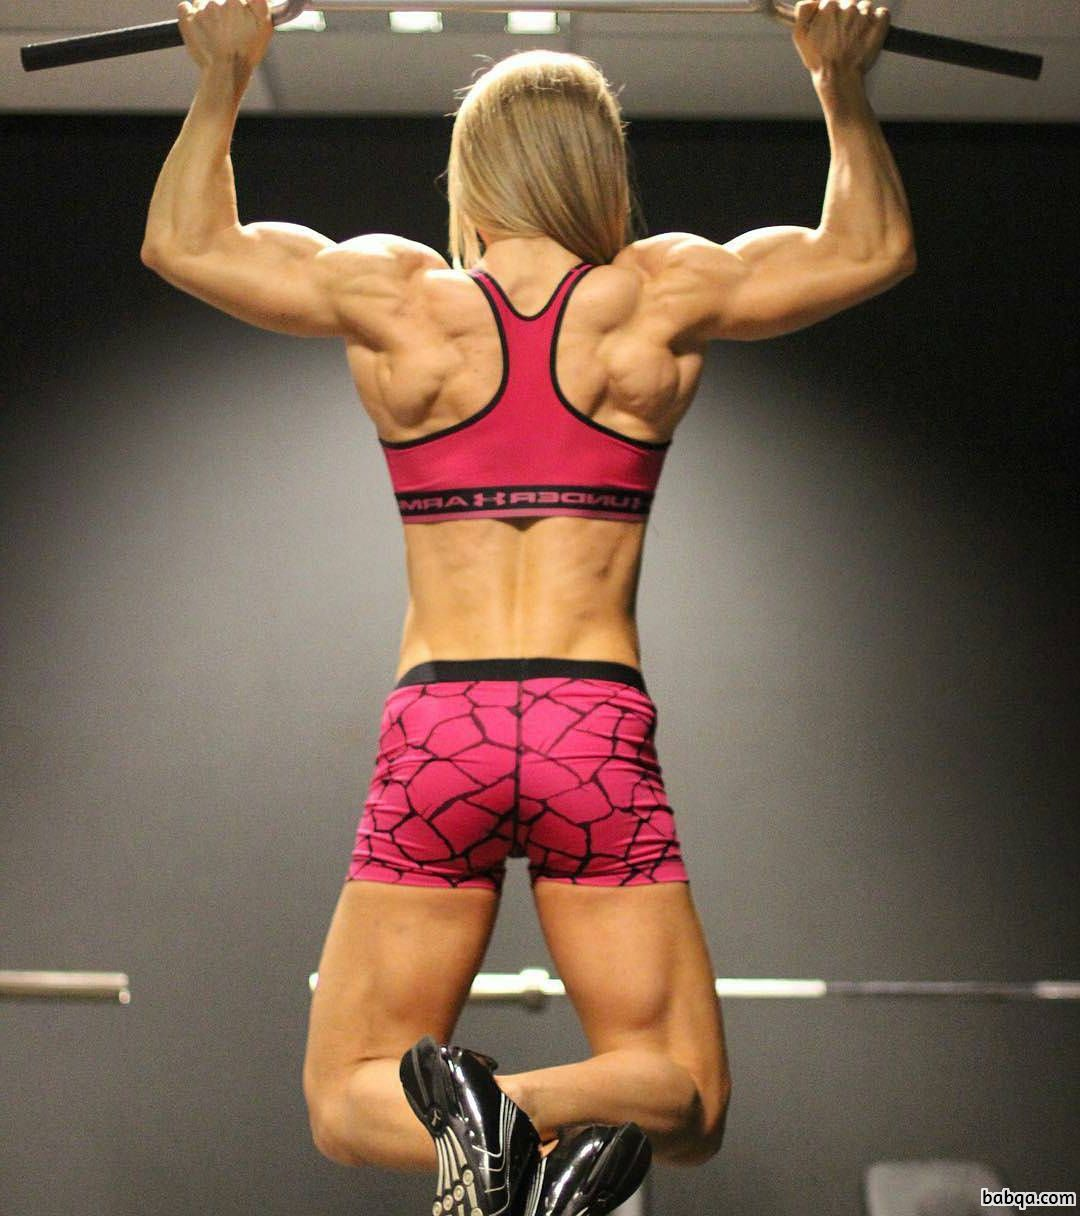 beautiful girl with strong body and muscle legs photo from reddit